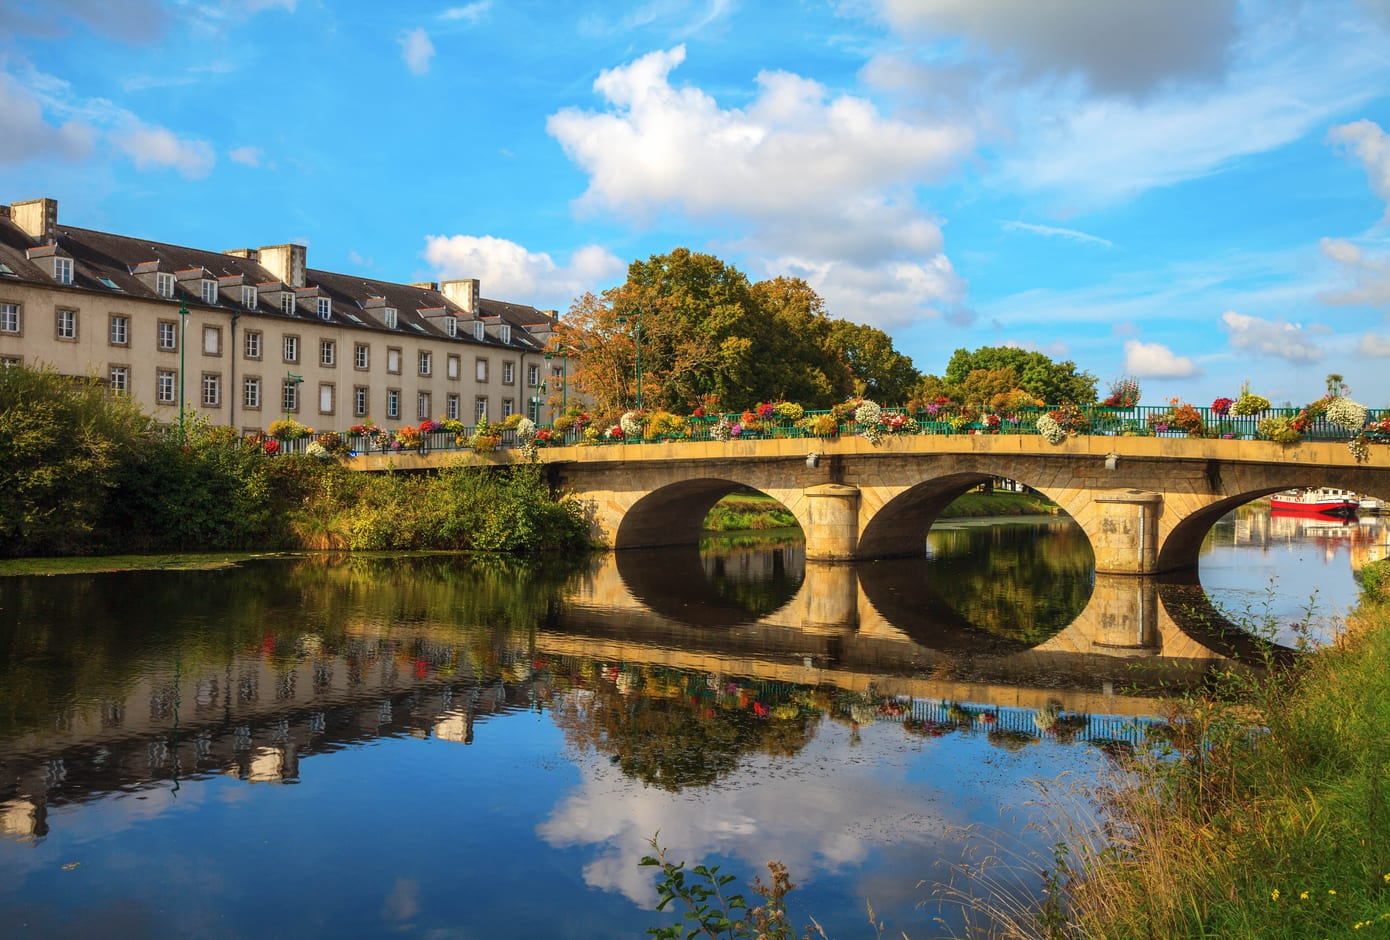 A bridge on Nantes Brest canal in Pontivy, Brittany, France.